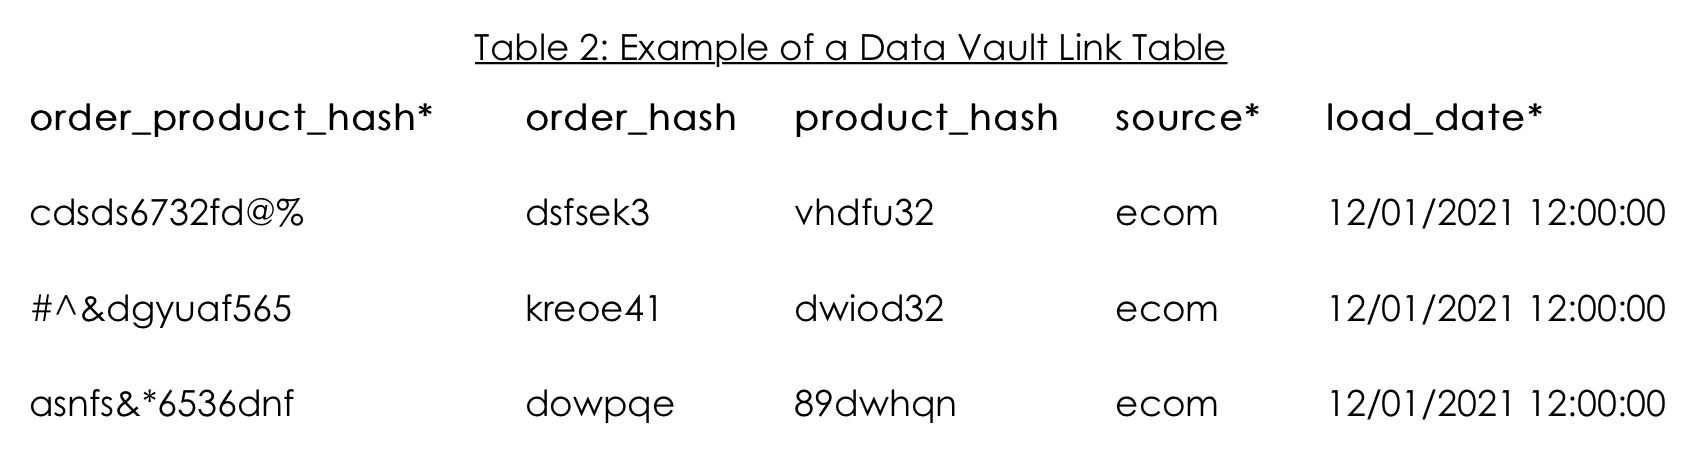 Table 2: Example of a Data Vault Link Table